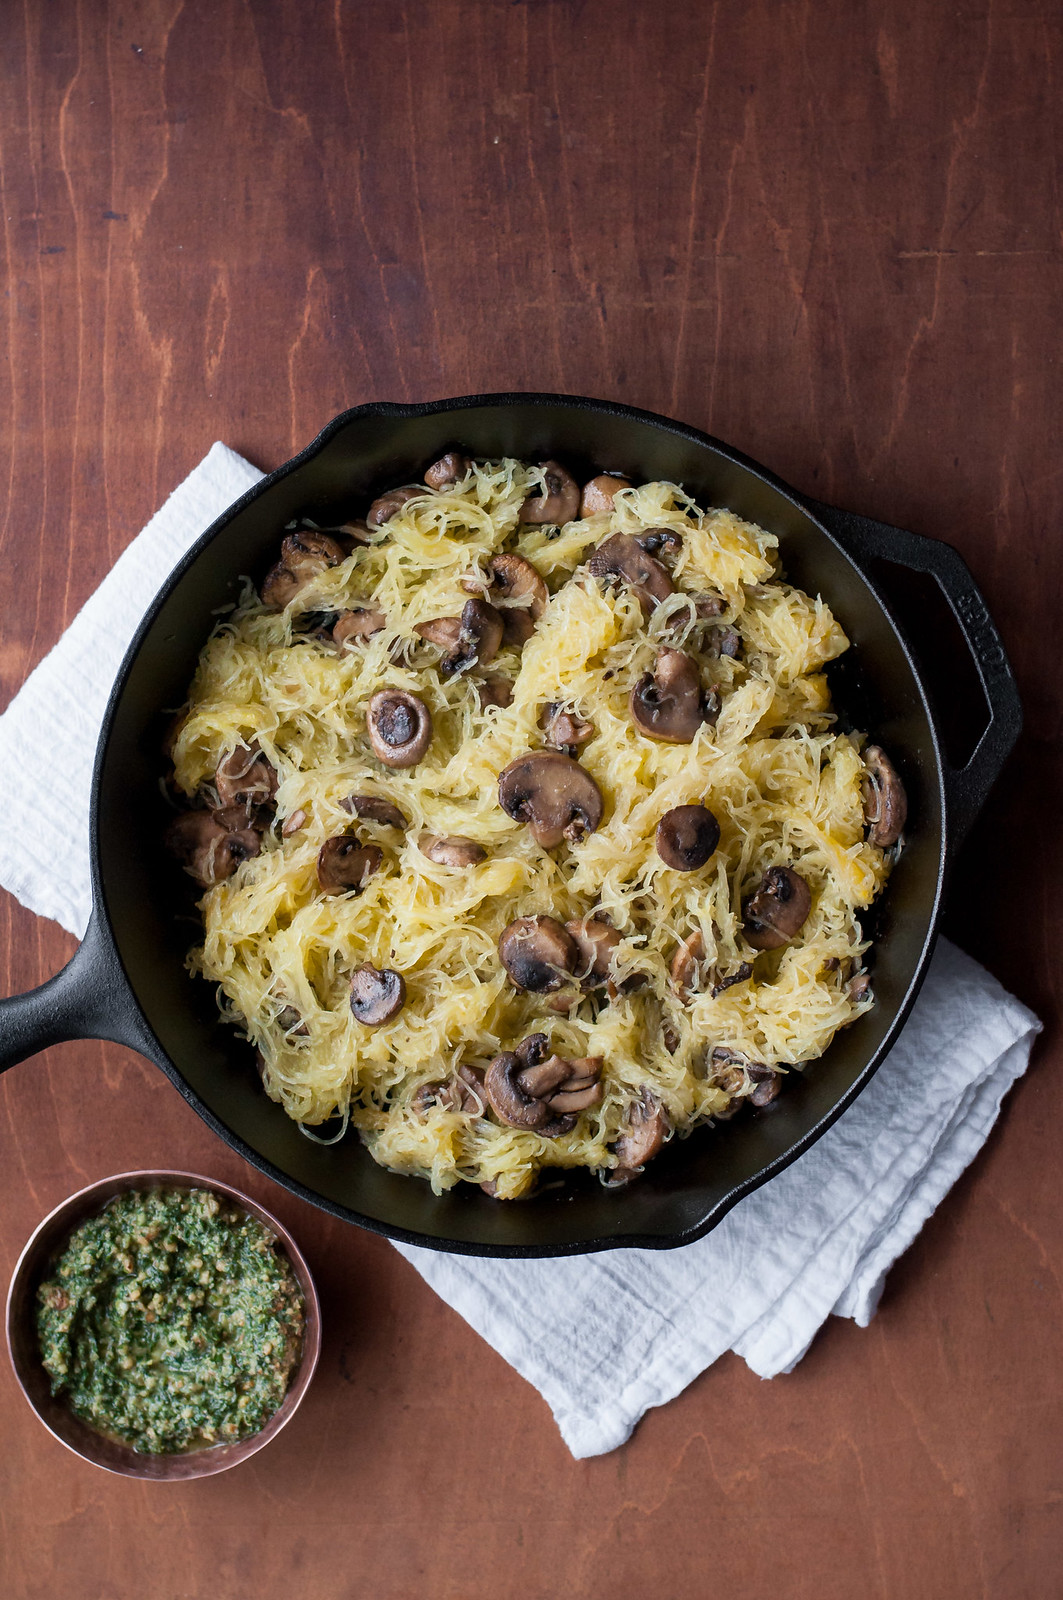 Spaghetti squash with handmade lemony pesto and mushrooms: an easy, meatless, and gluten-free weeknight dinner.